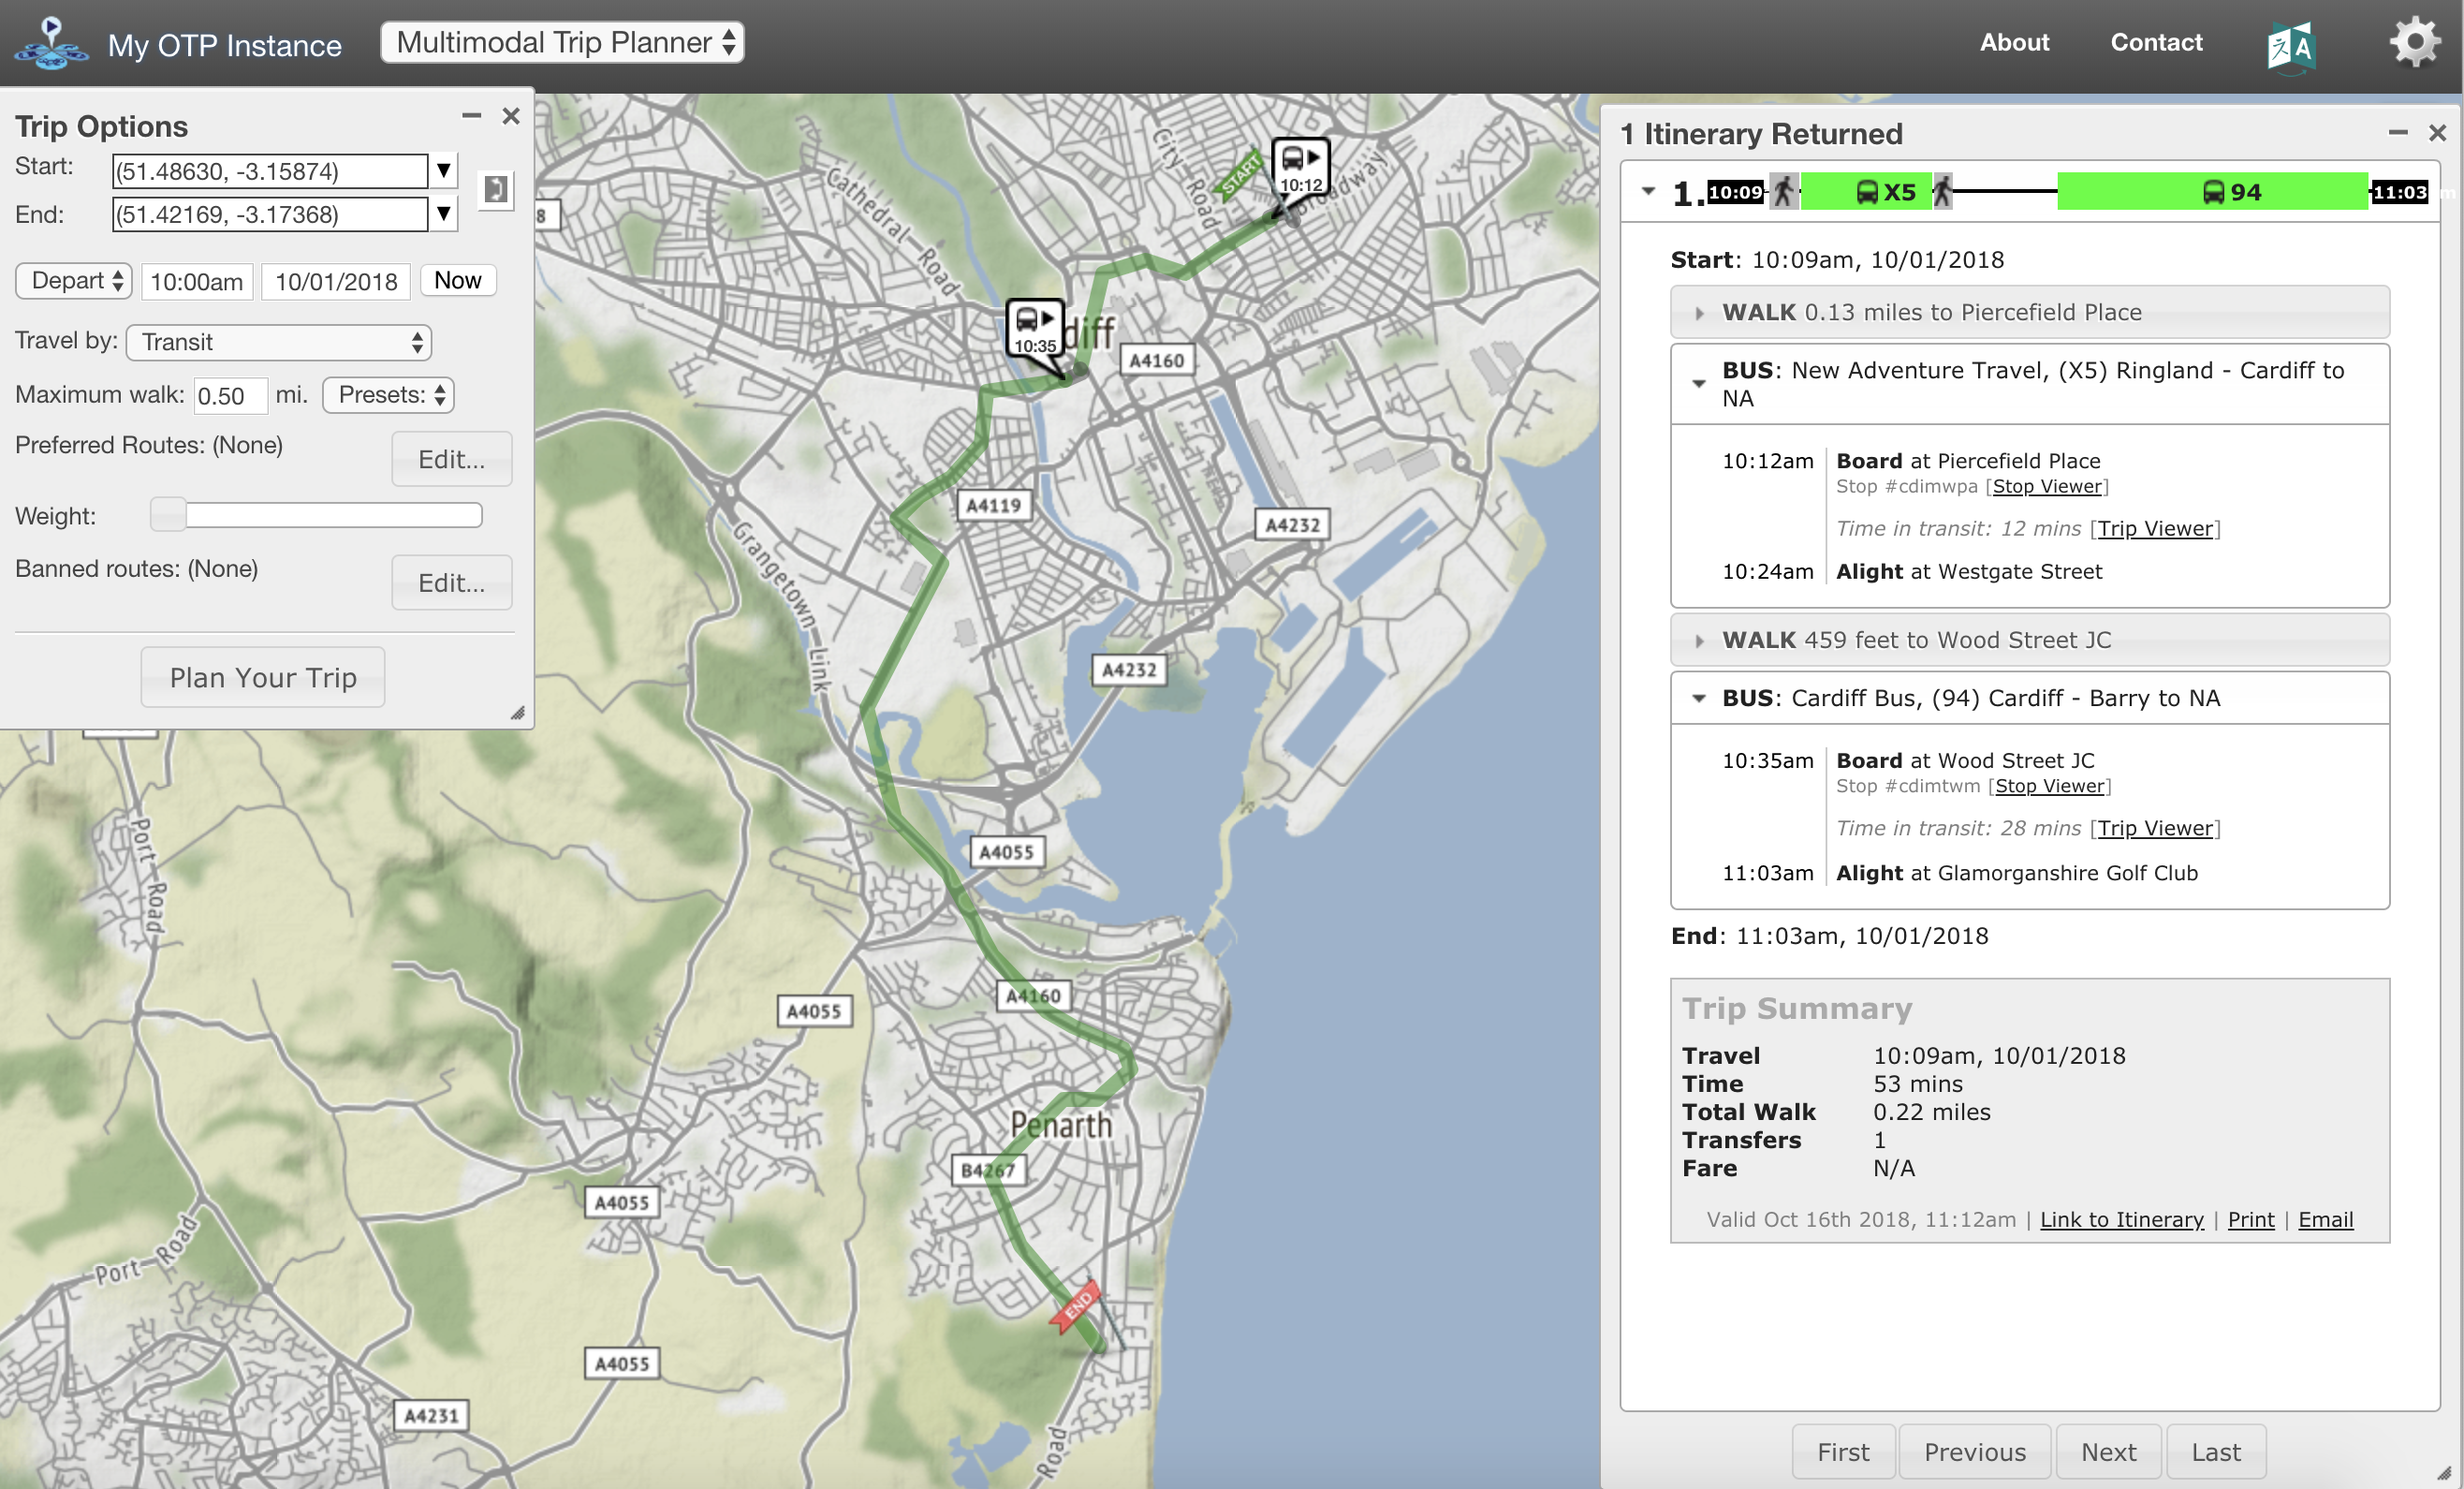 A screenshot of the multimodal trip planner where users can set their start and ending destination. This instance shows a journey across the city of Cardiff.